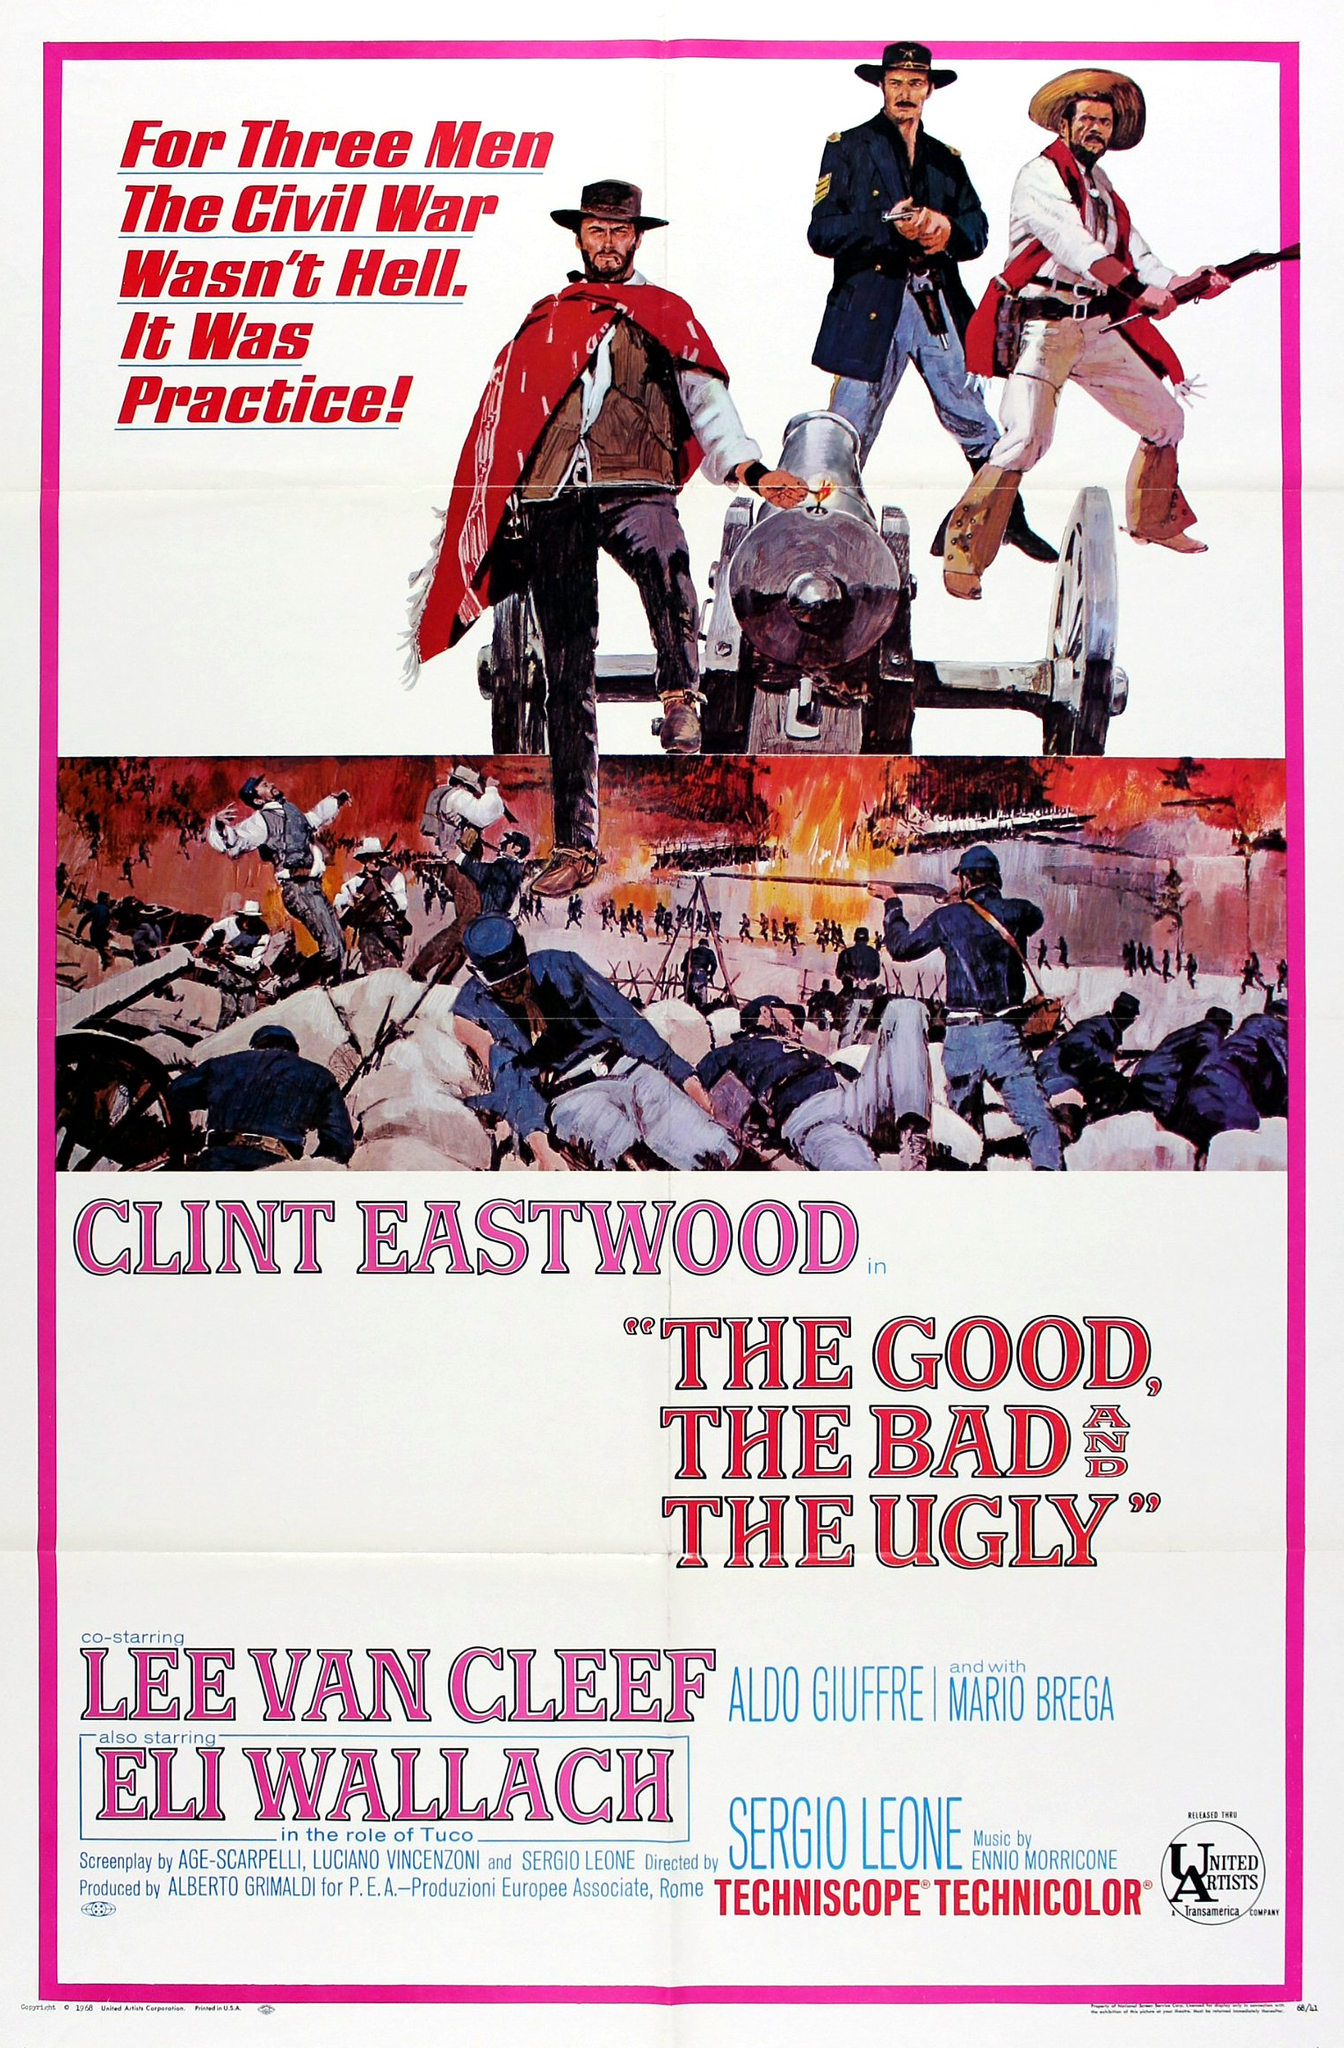 BLOGAS, GERAS IR BJAURUS (1966) / THE GOOD, THE BAD AND THE UGLY